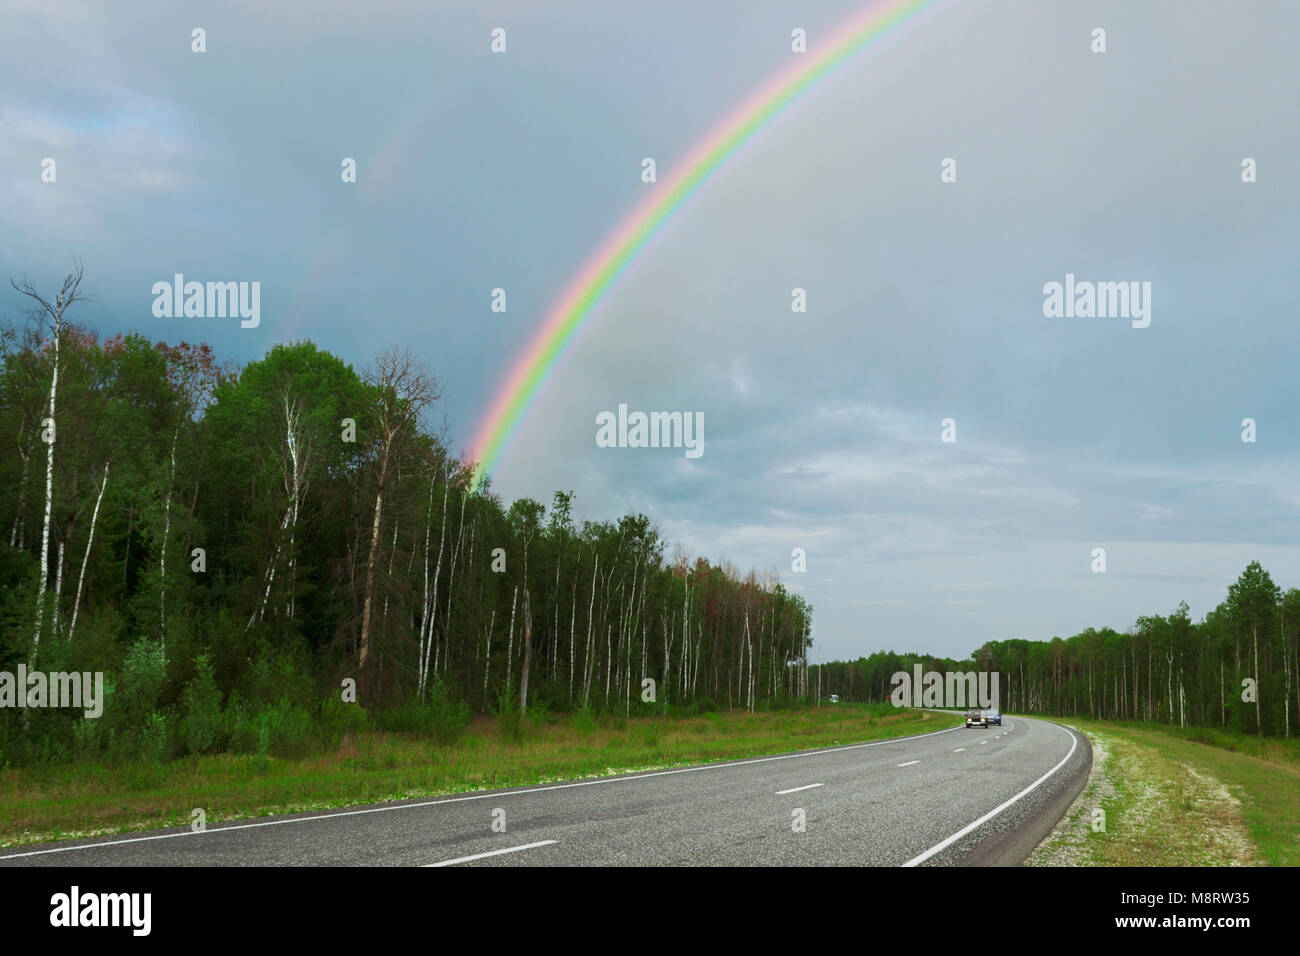 Rainbow after rain over highway in the summer - Stock Image